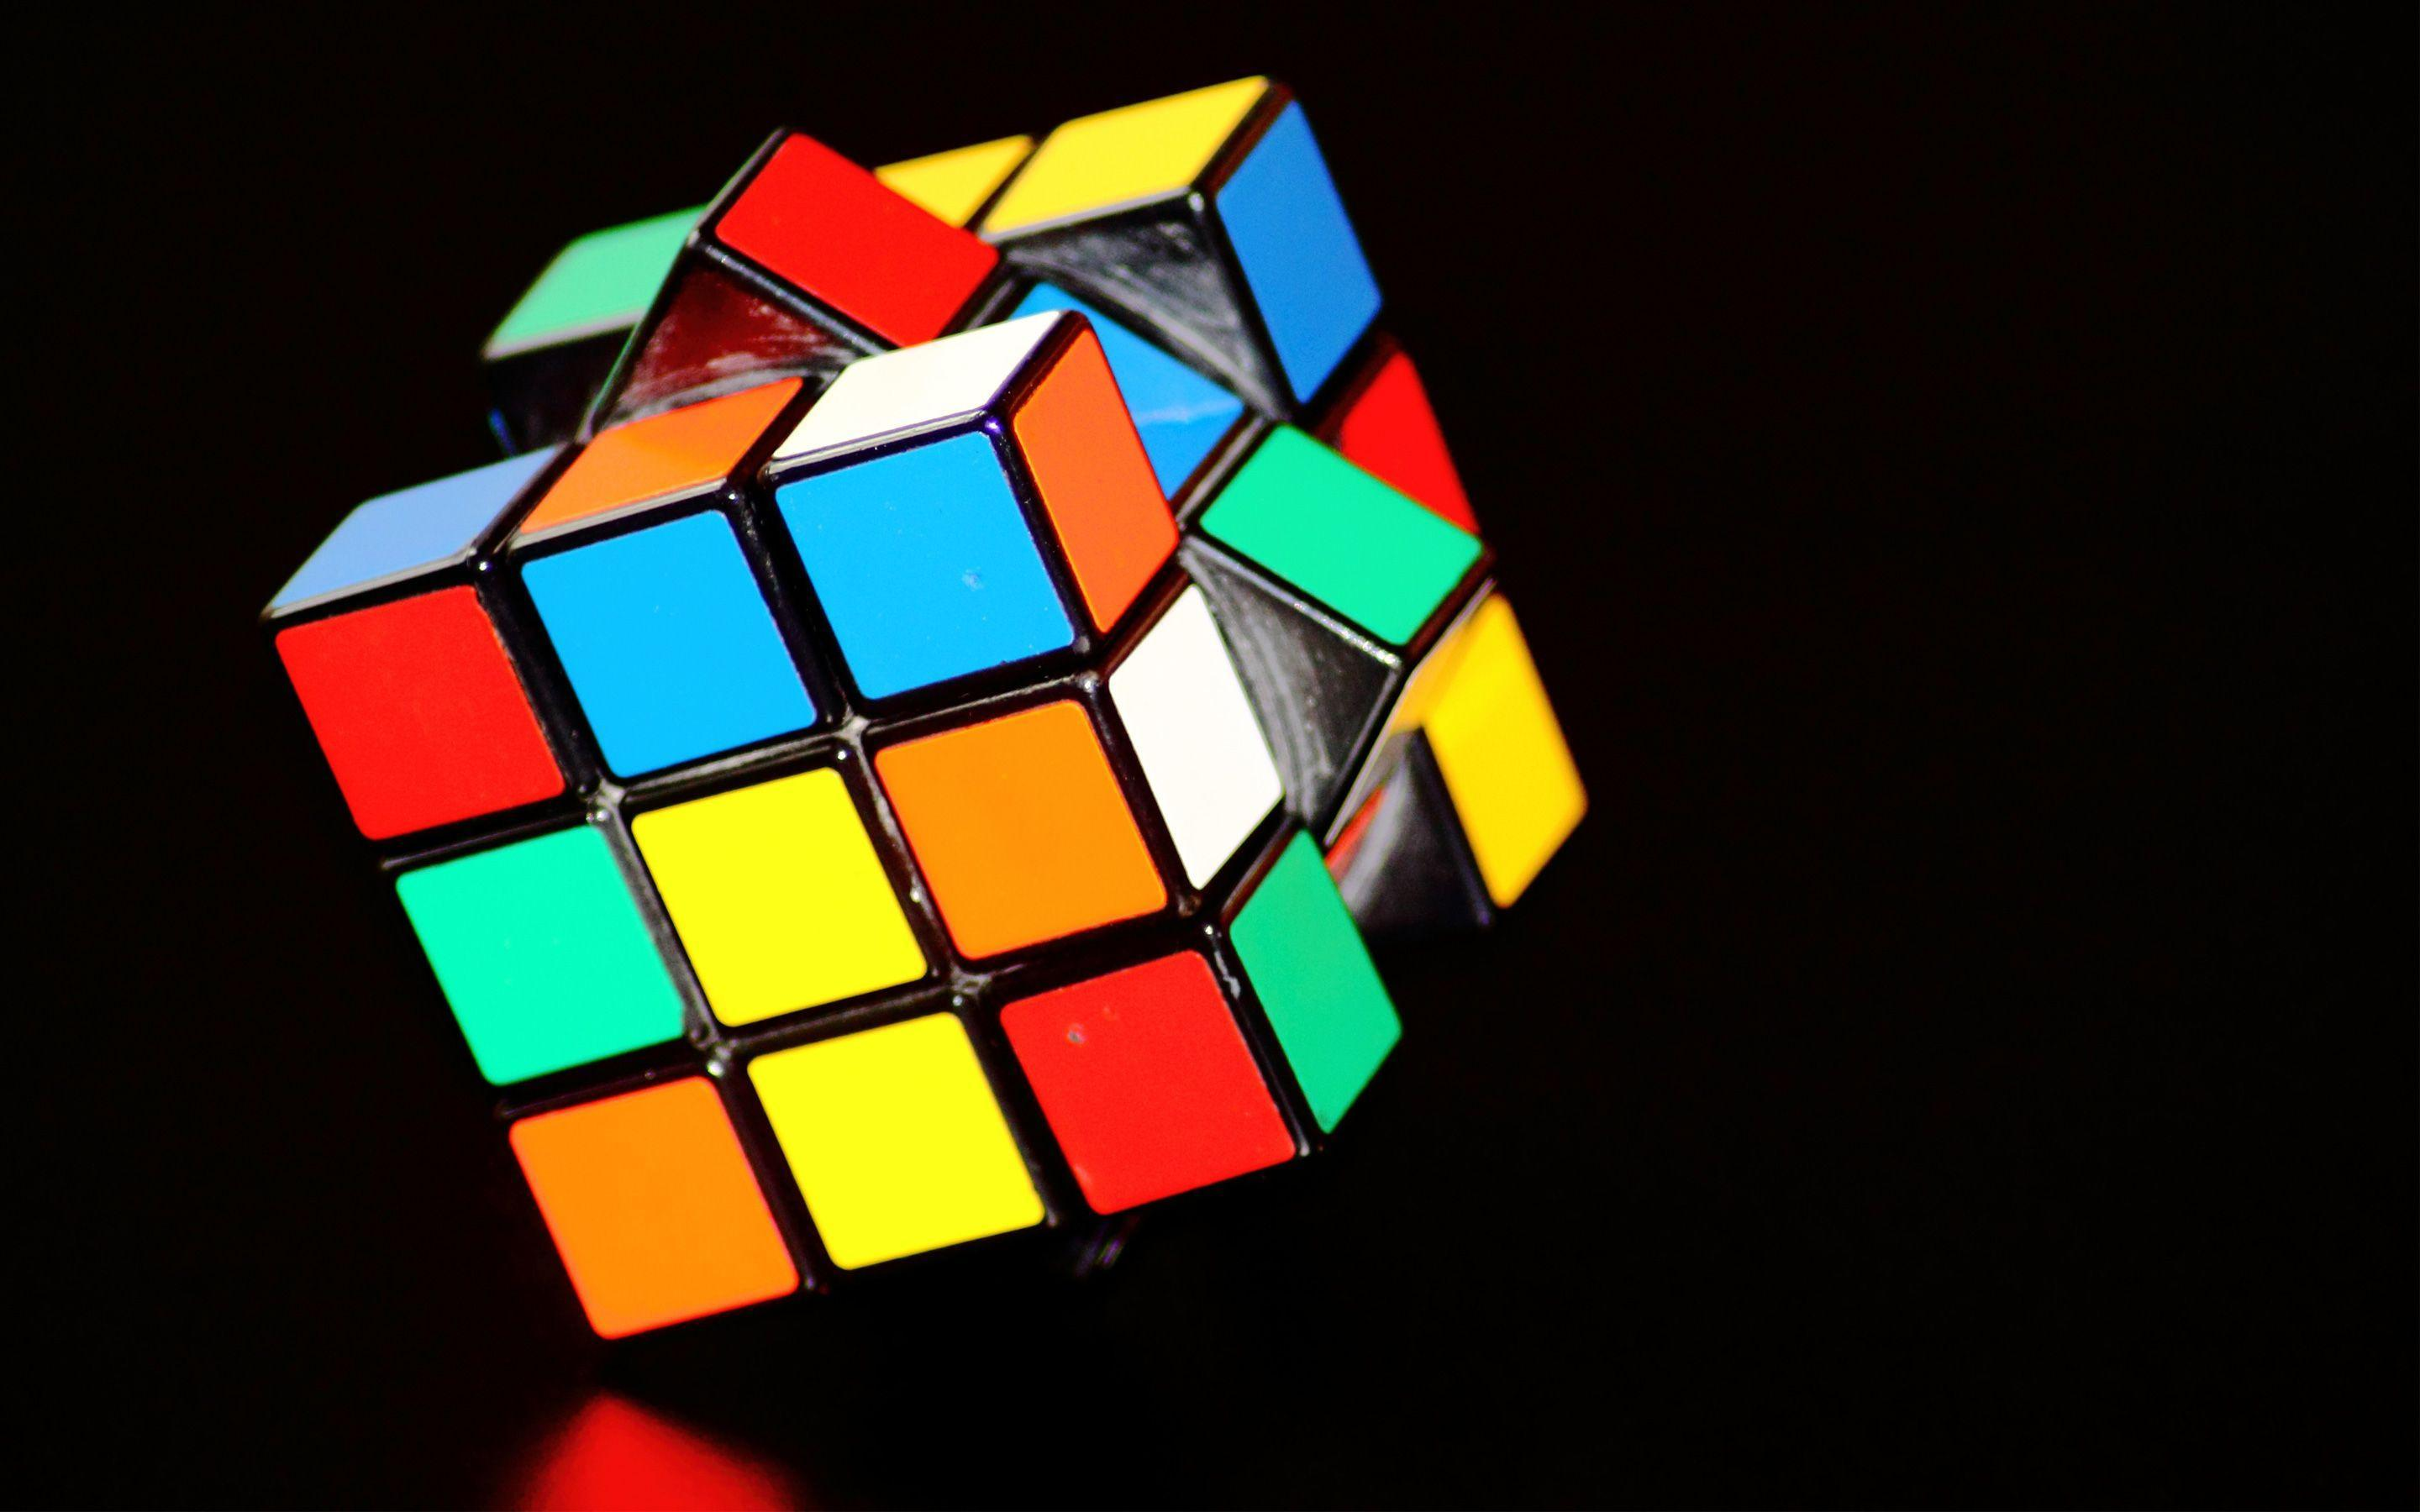 Rubiks Cube Wallpapers Wallpaper Cave